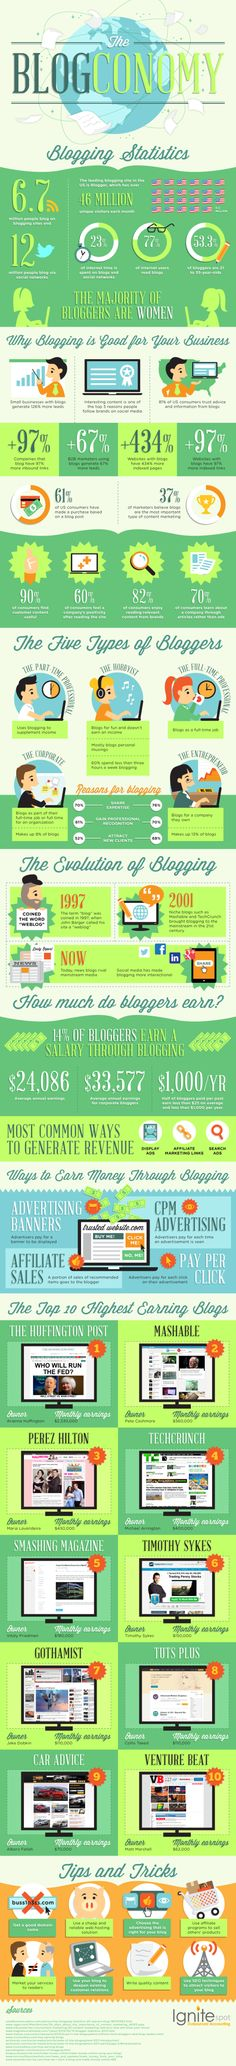 The blogconomy #infographic via @buffer #blogging #blogger #blogs